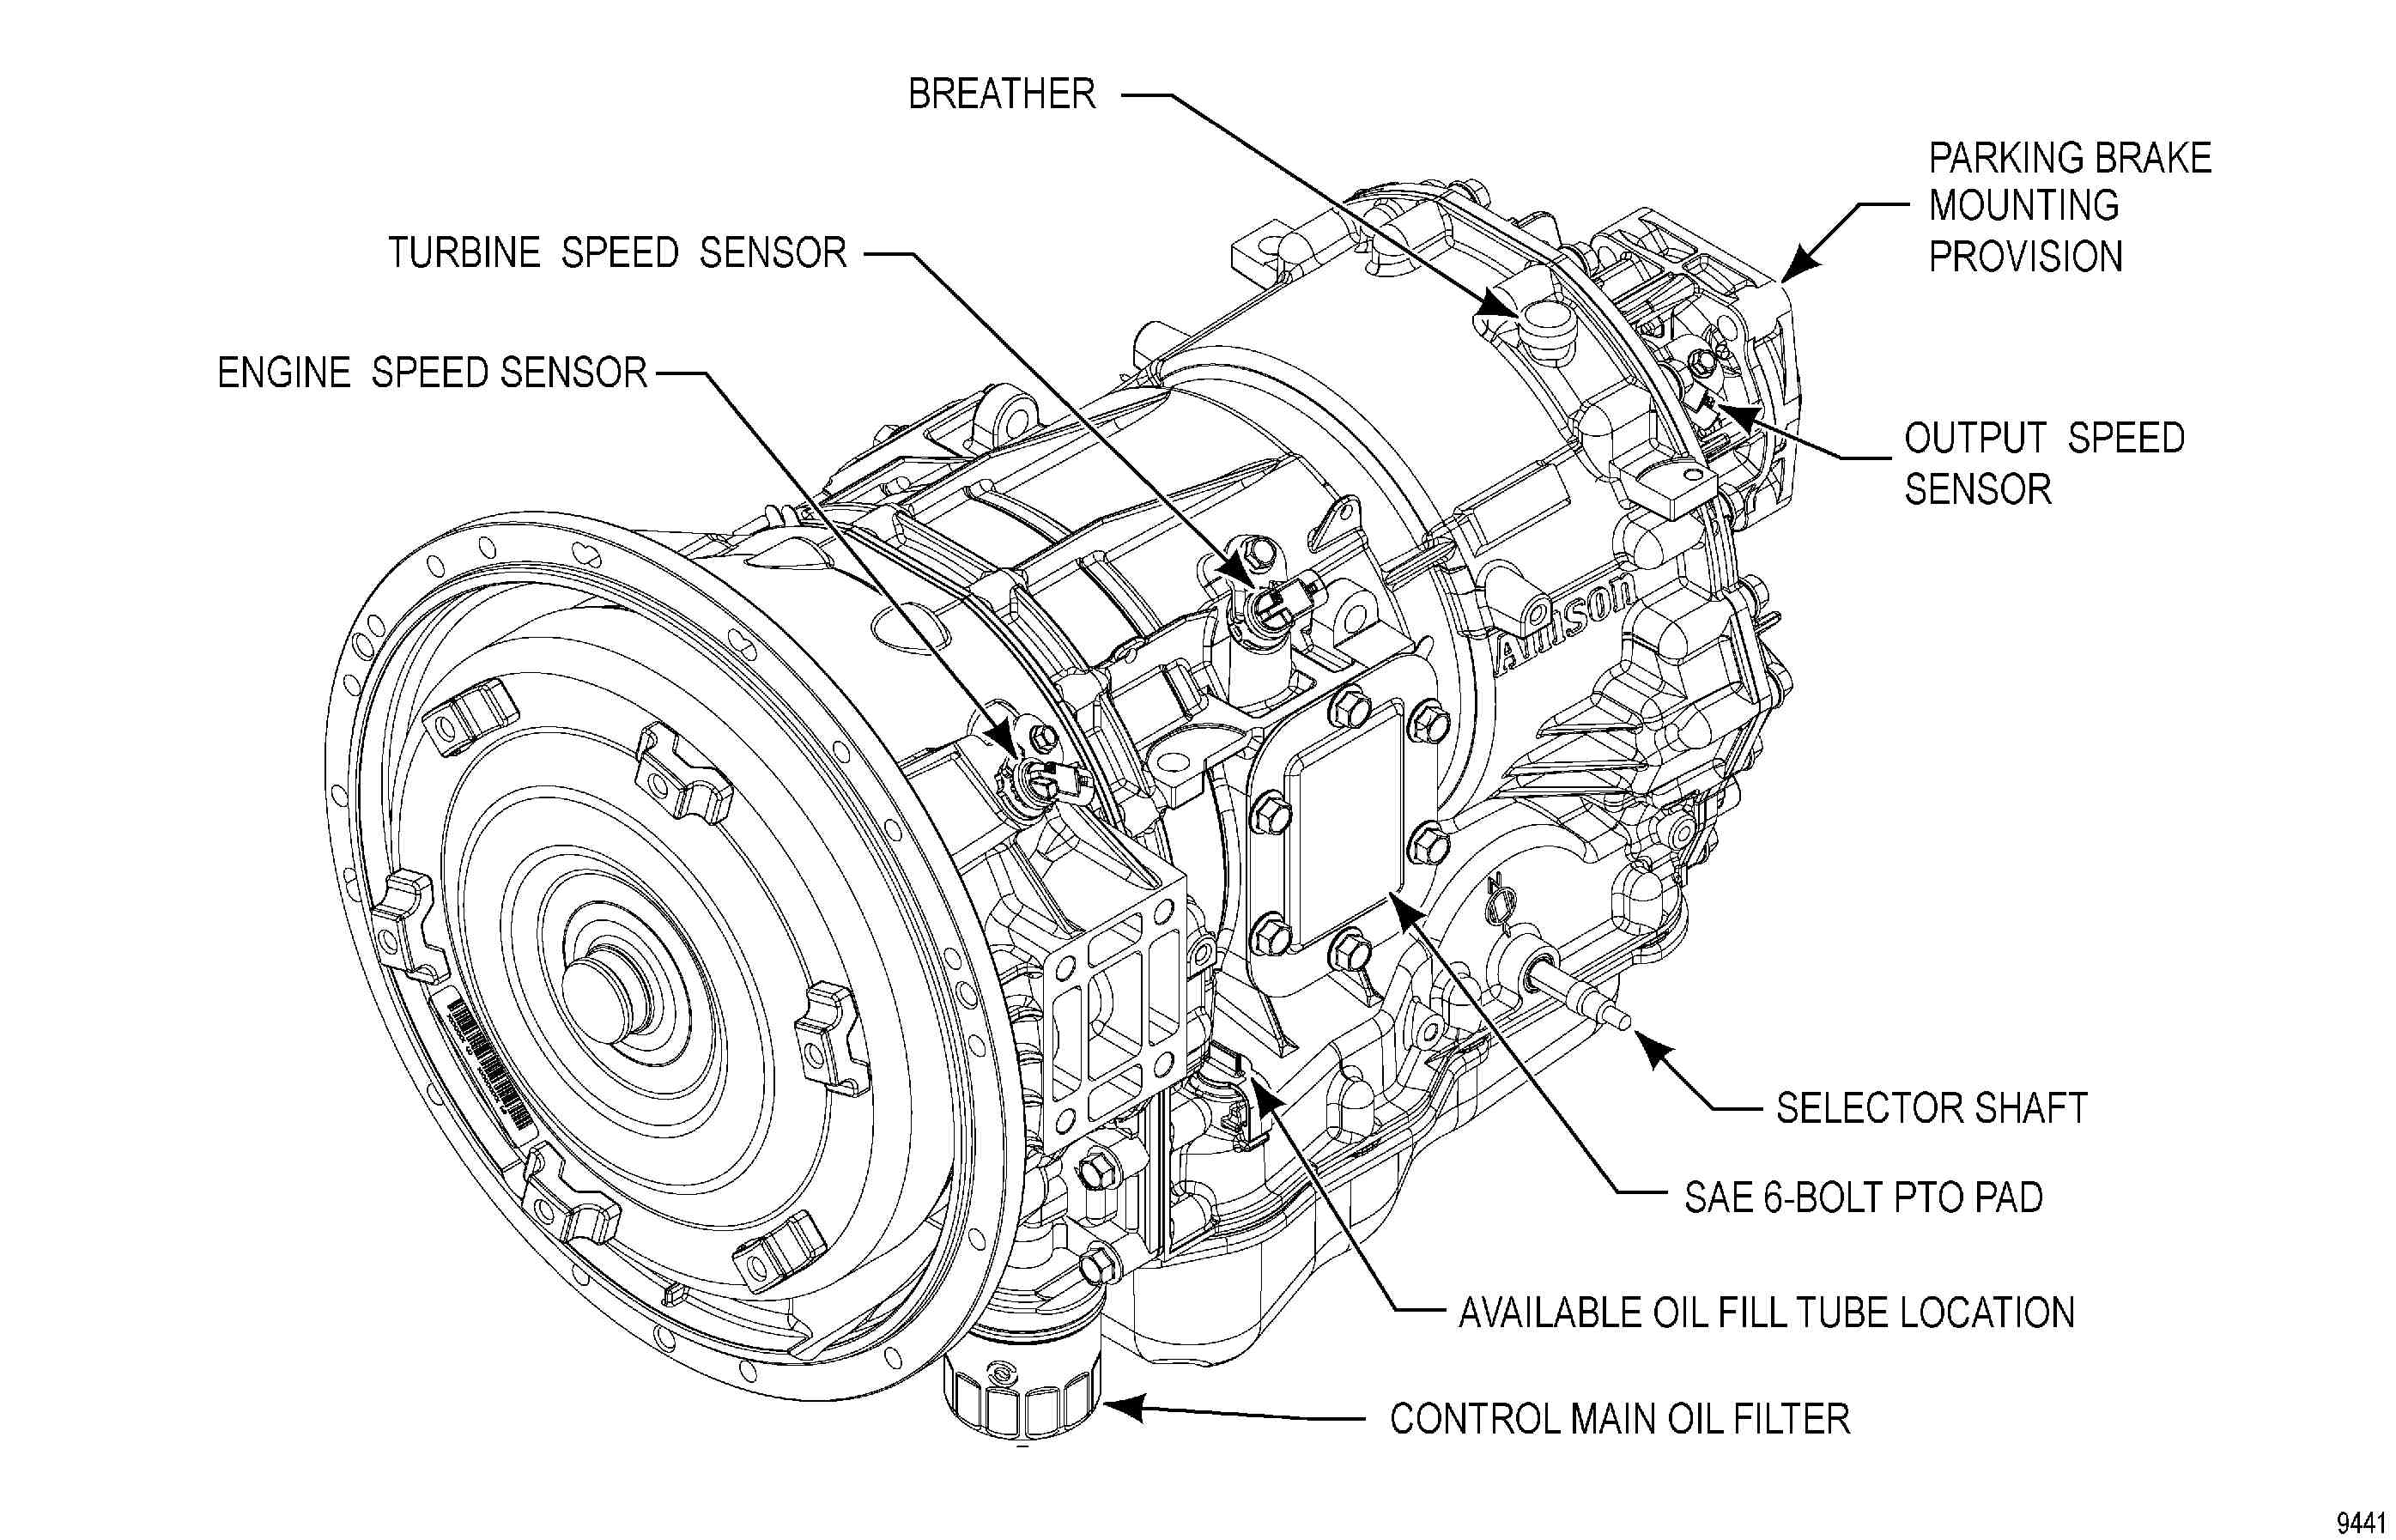 Allison Transmission 1000 Series Wiring Diagram